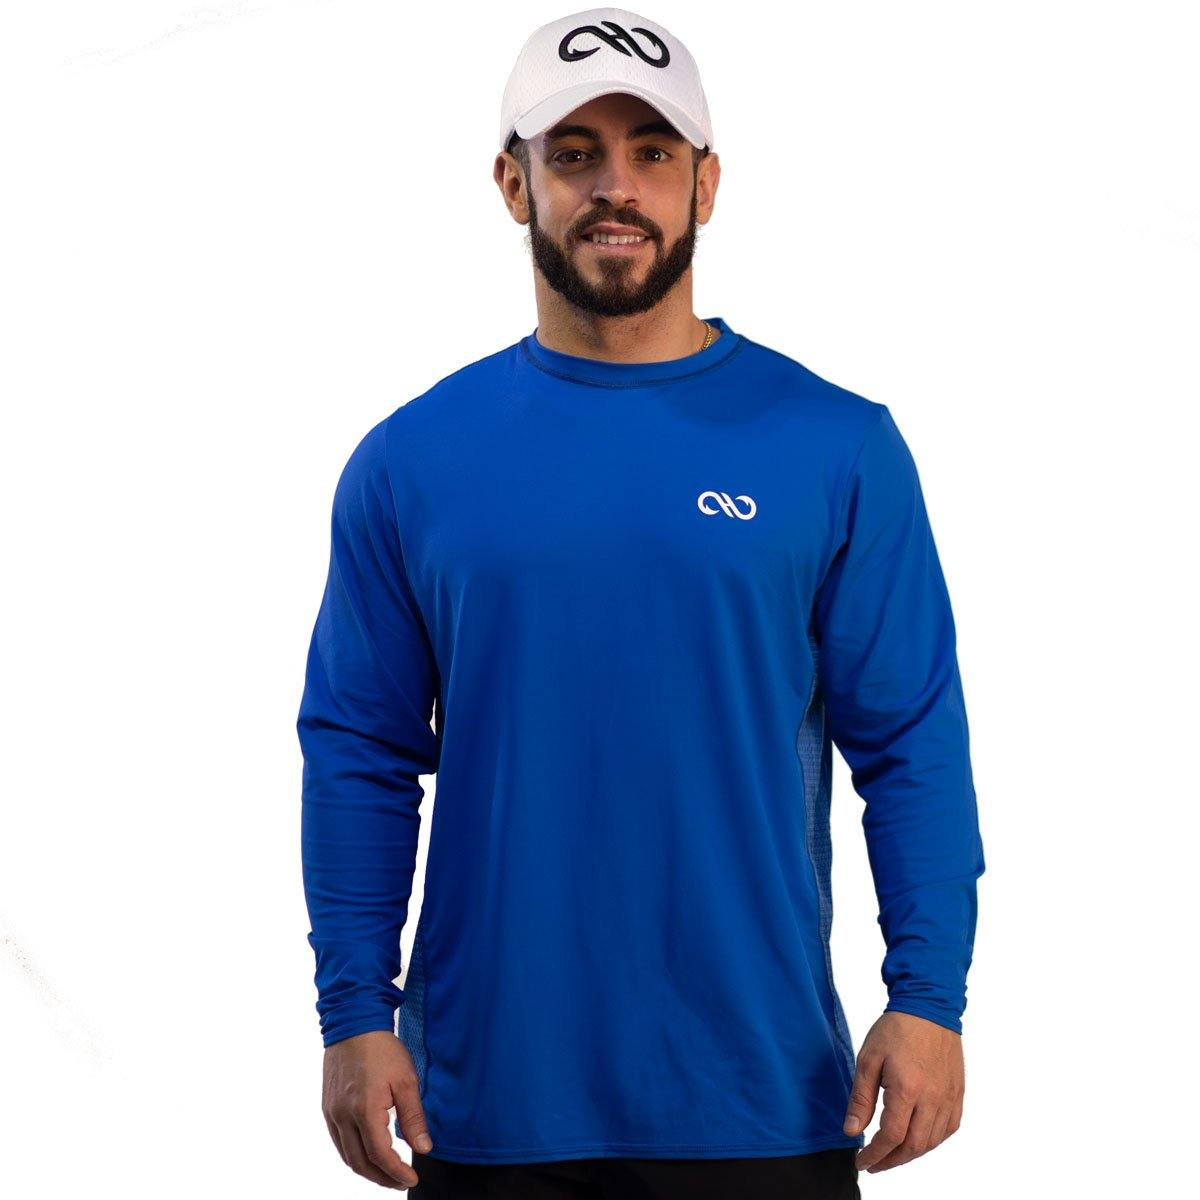 Pro-Series Performance Shirt (4346400079944)